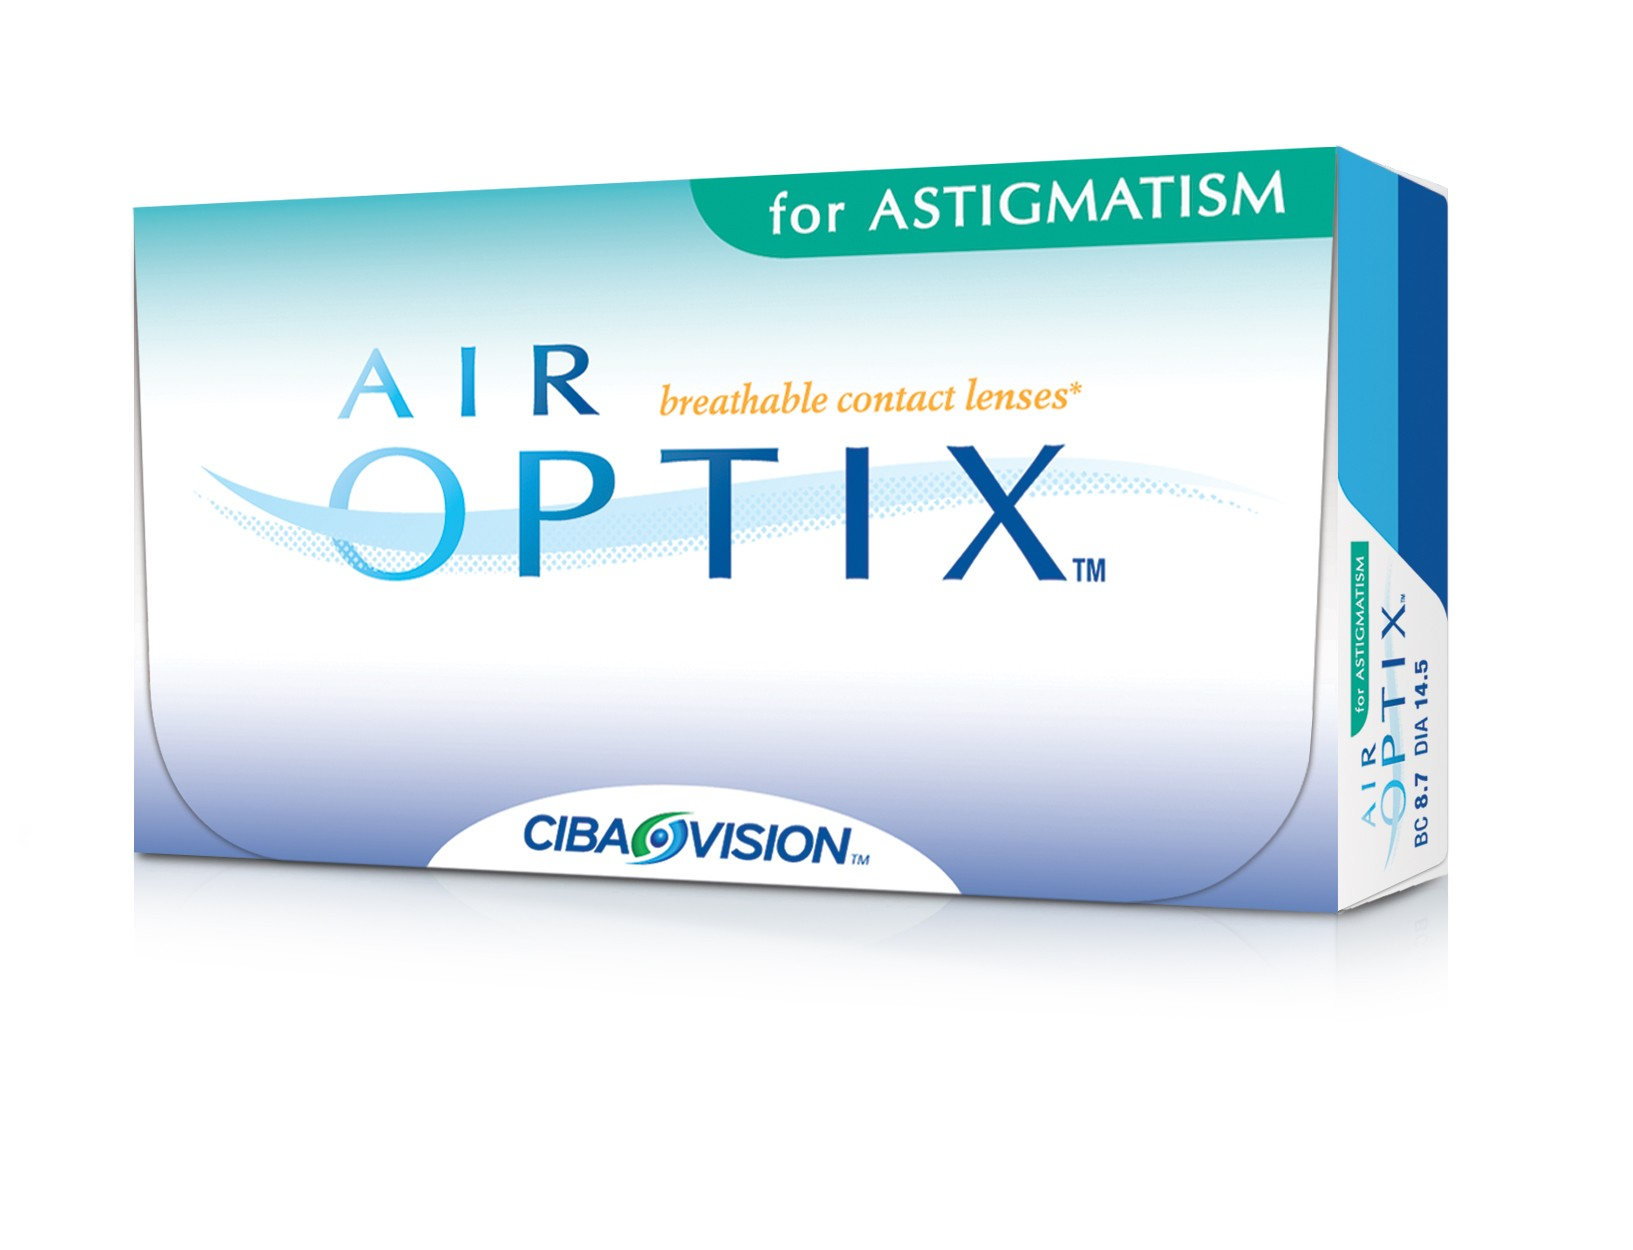 Buy your mail order discount contact lens online at Express Contacts! We have the best prices on the Internet for PureVision 2 HD, PureVision 2 For Astigmatism, Acuvue Oasys, Acuvue Advance and Air Optix Night & Day contact lenses! We also offer the lowest prices for O2OPTIX, 1 Day Acuvue, Focus DAILIES, O2 Optix contacts! Also colored, toric, acuvue, soft, disposable, cat eye, bifocal, focus.